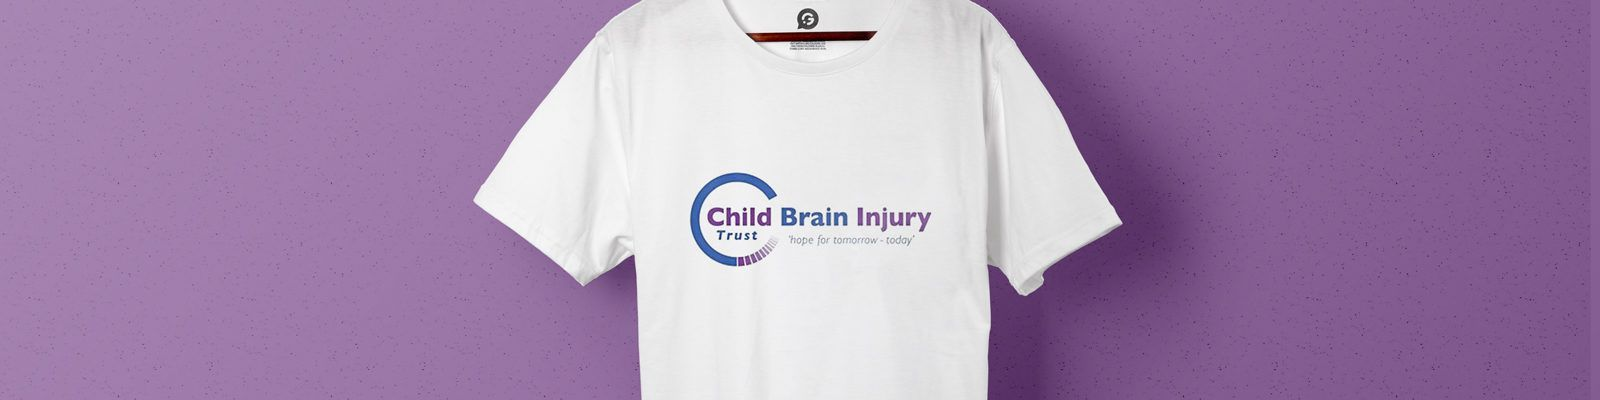 Printed T-Shirts for The Child Brain Injury Trust's Fundraising Event - Header Image